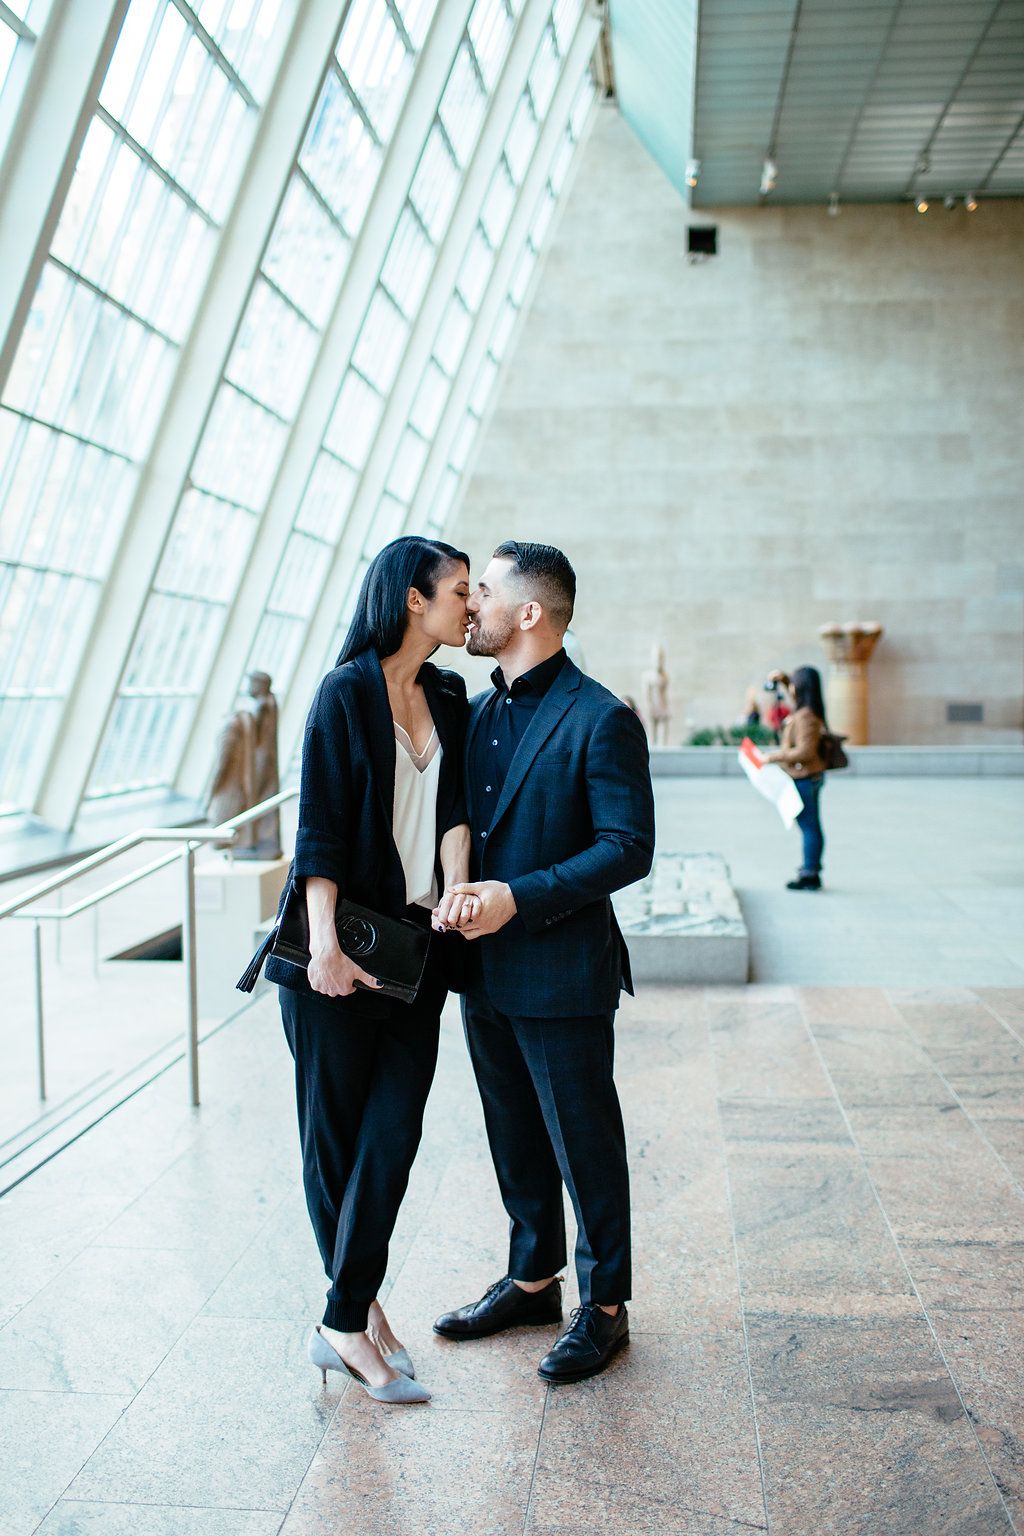 Tomasz and Jessica's surprise wedding proposal at the Metropolitan Museum of Art